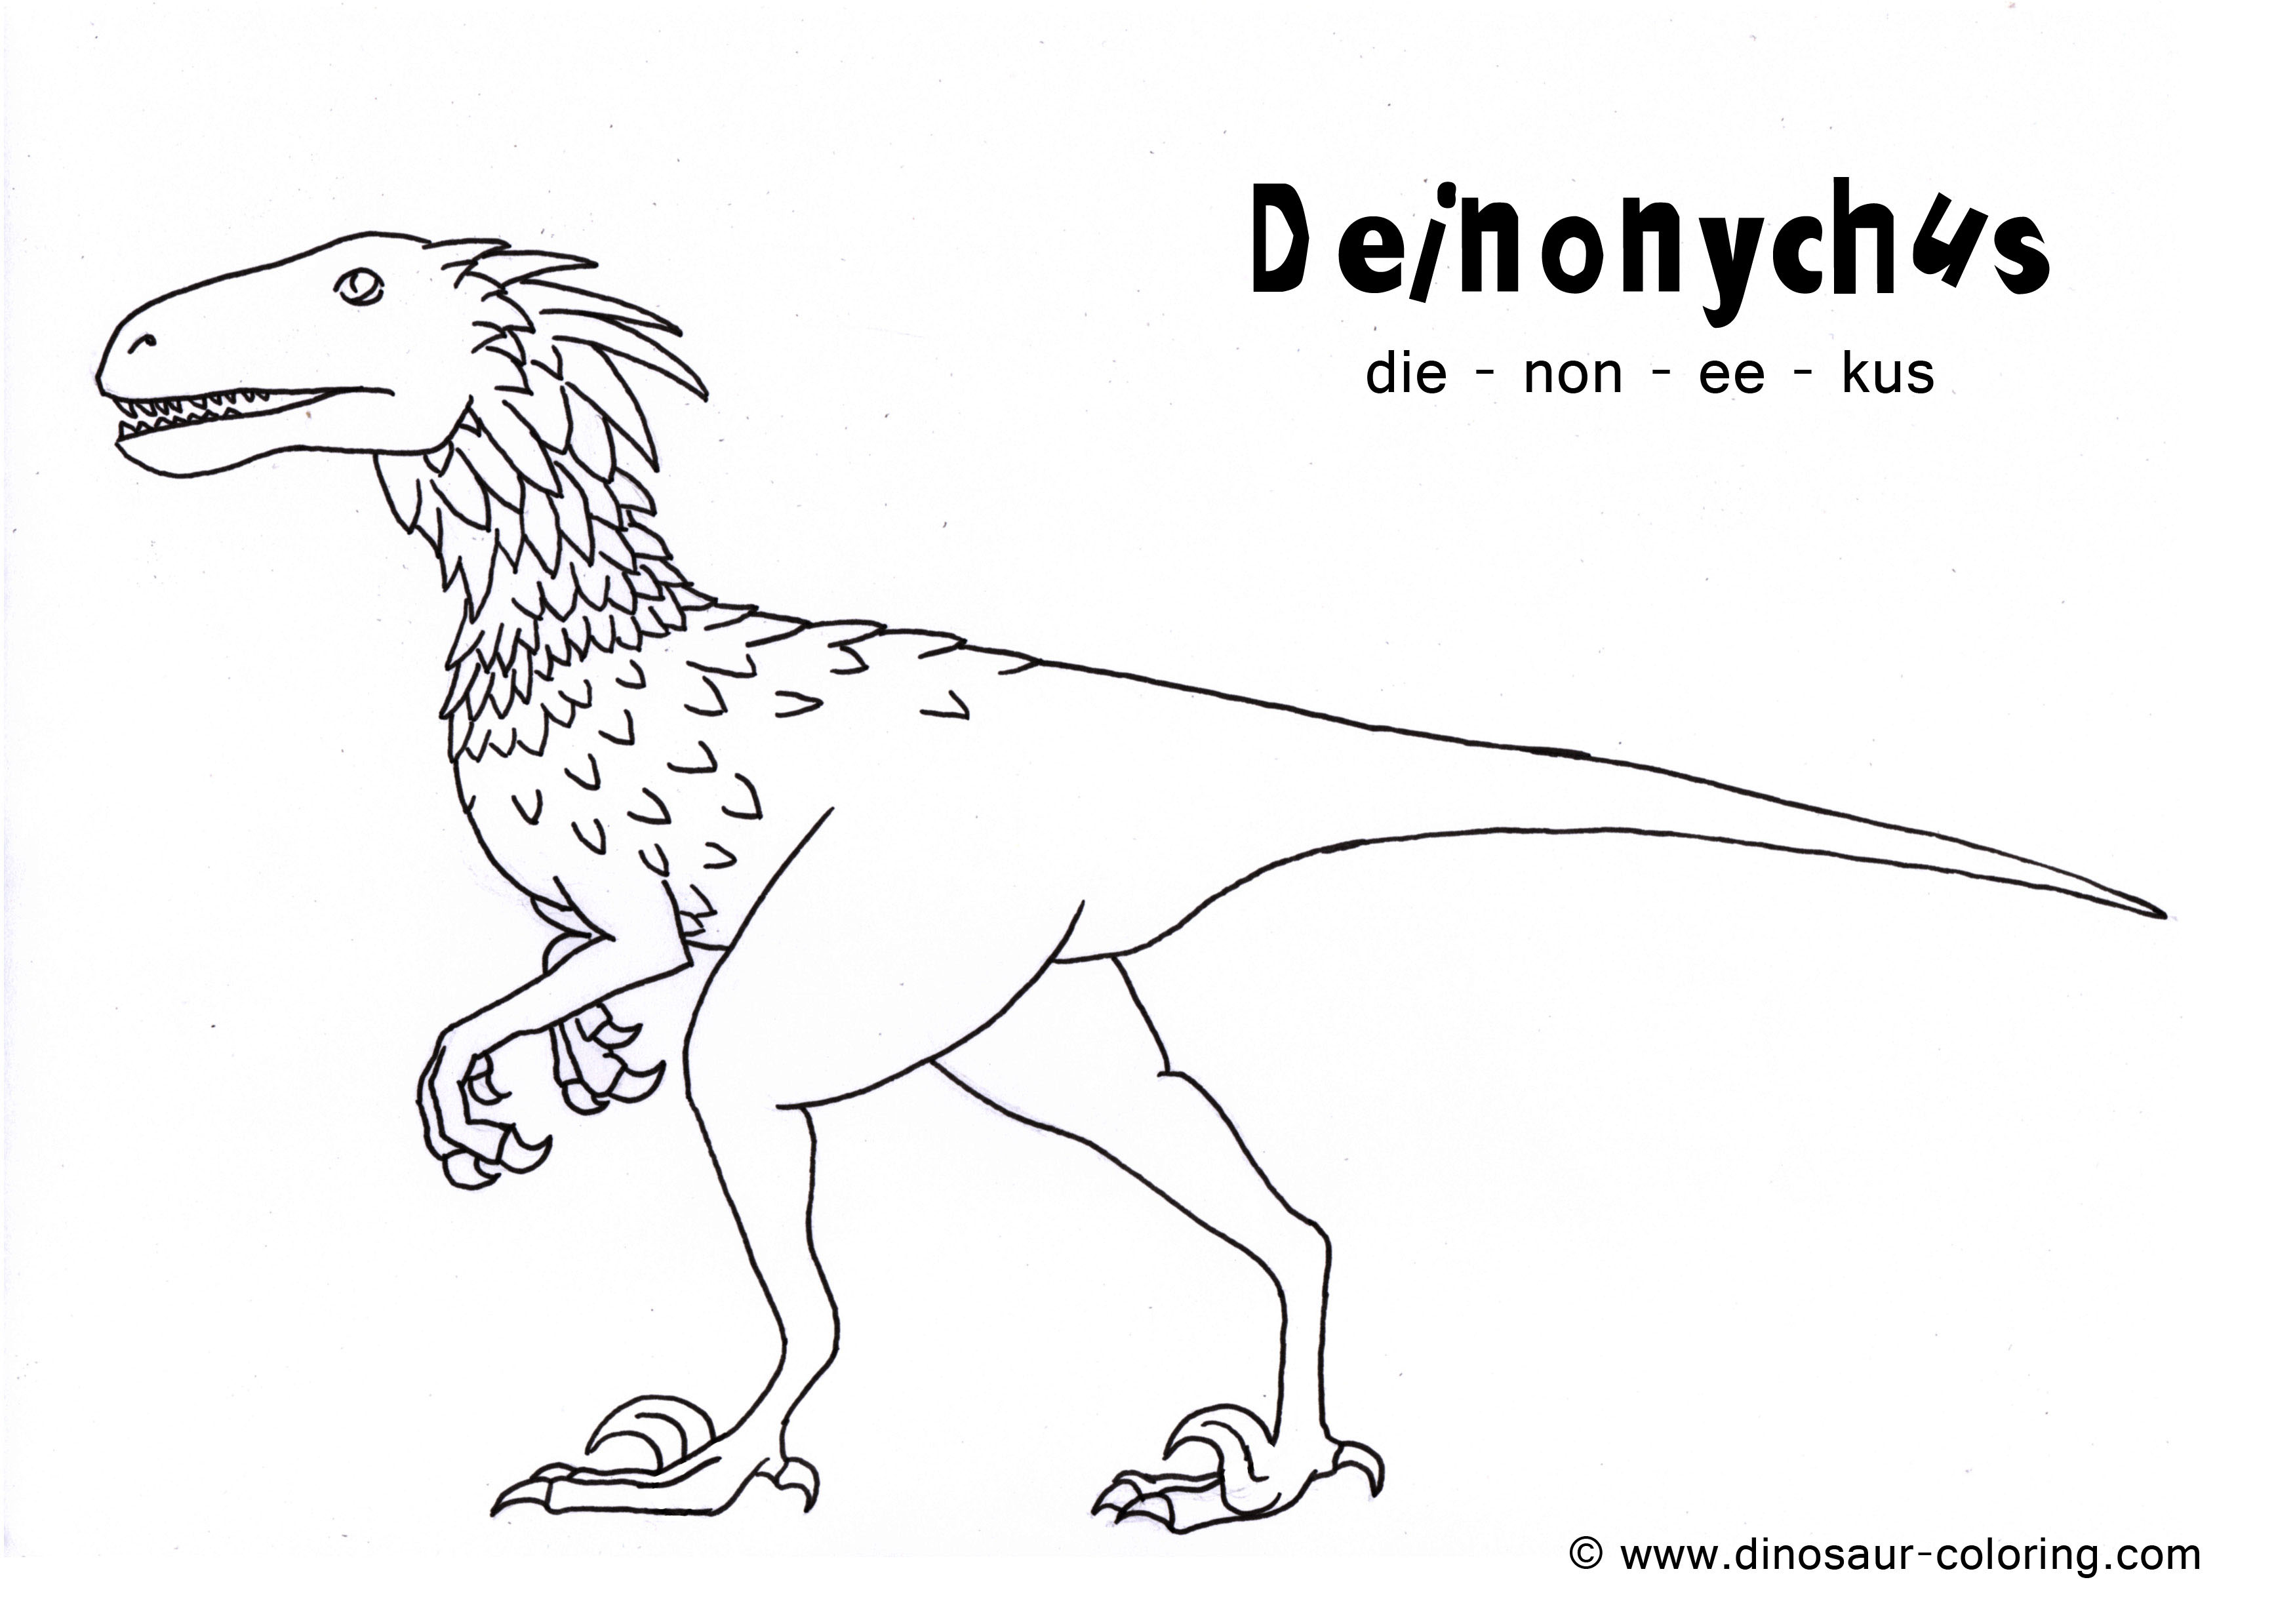 Dinosaur coloring #3, Download drawings